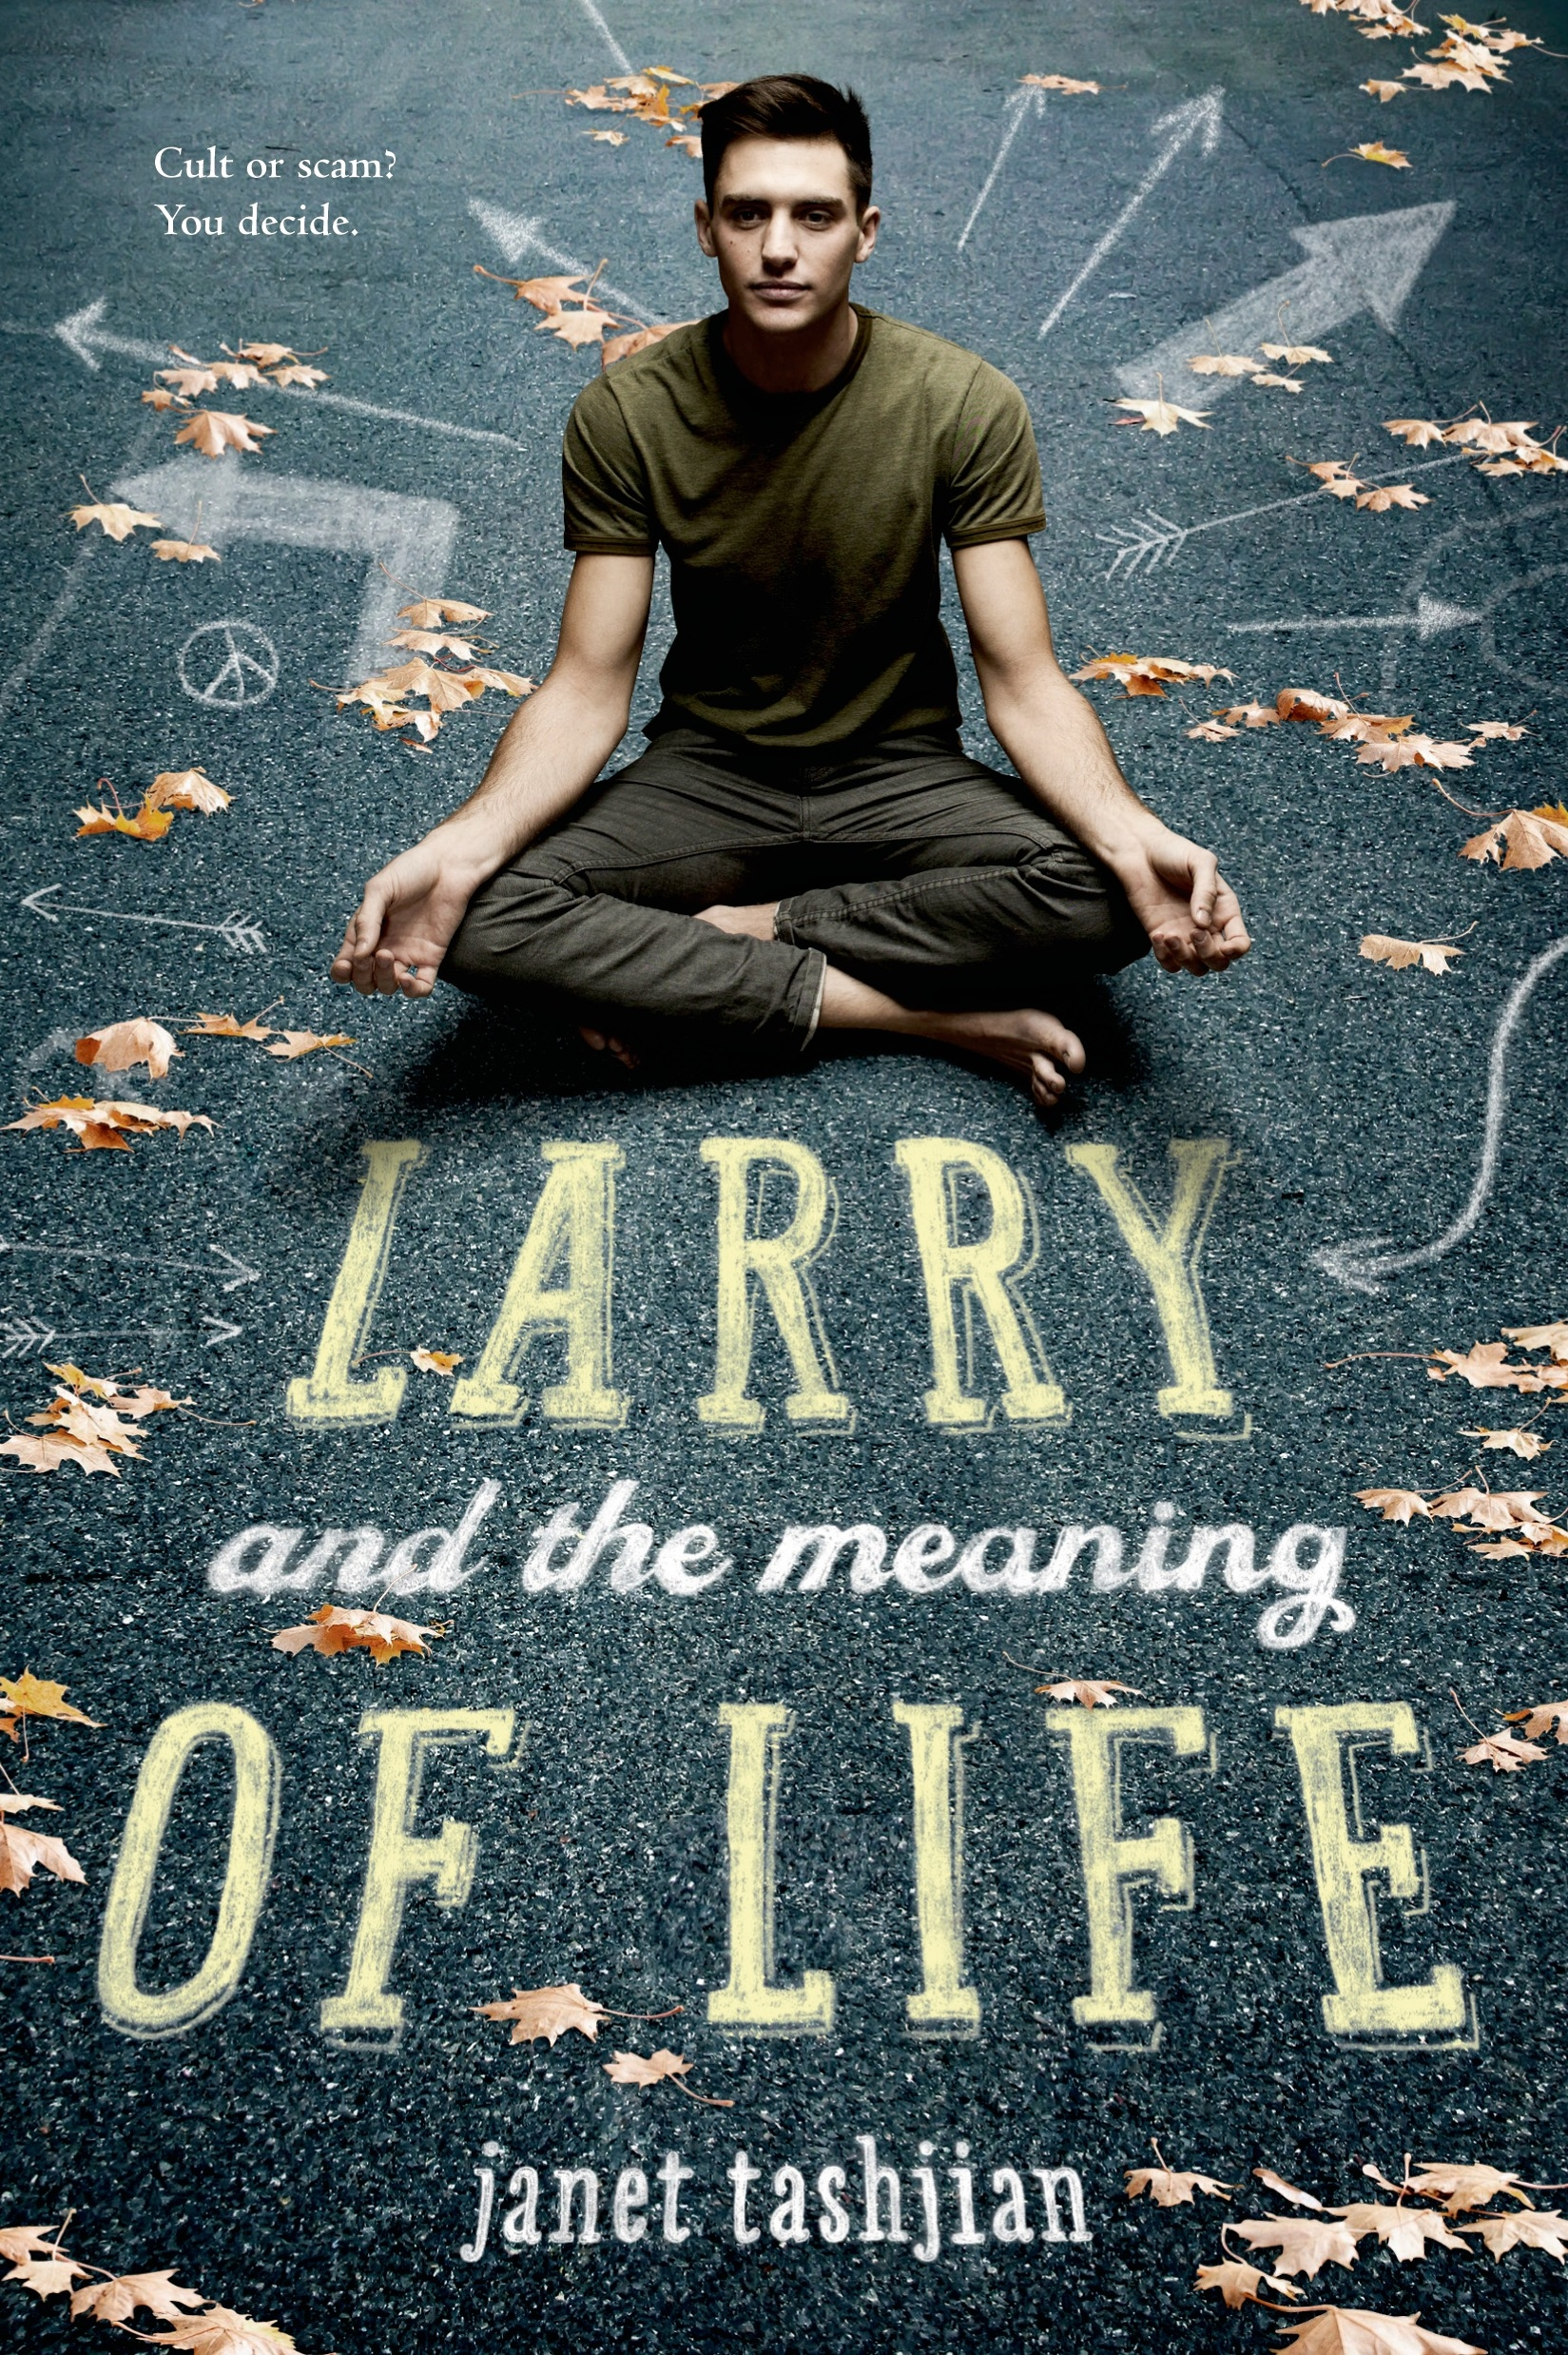 Image result for book of larry